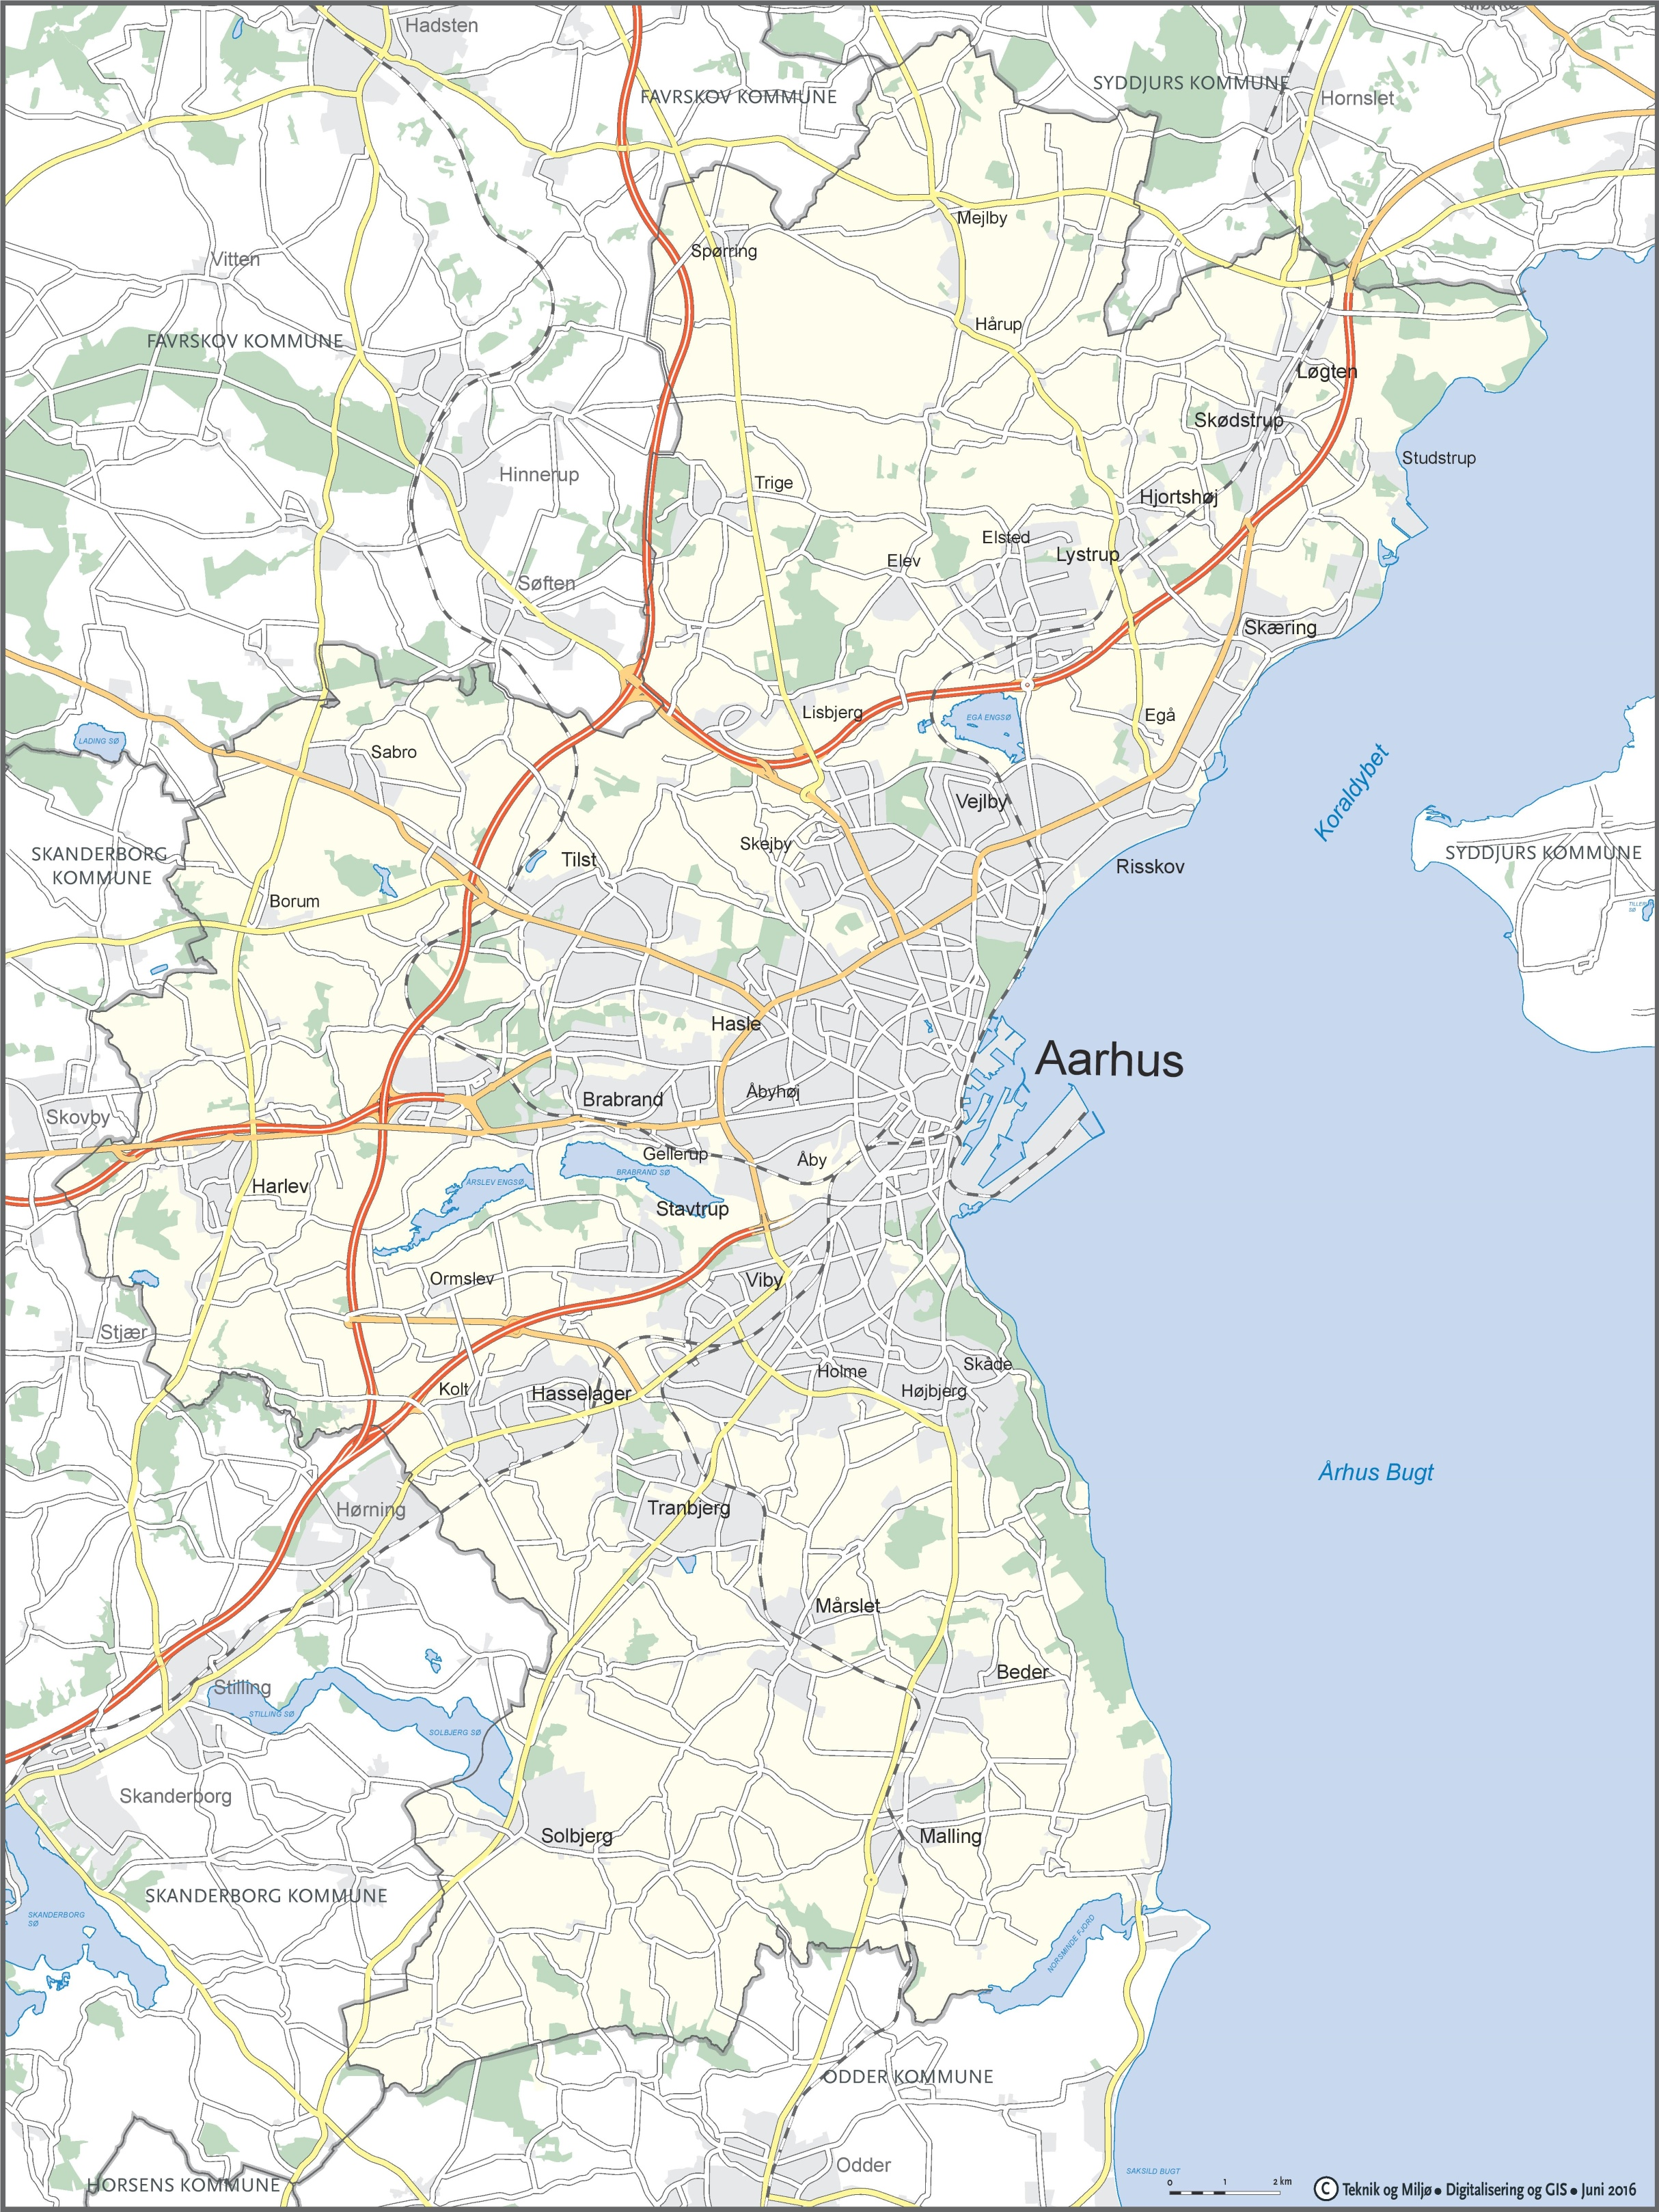 Map of surroundings of Aarhus